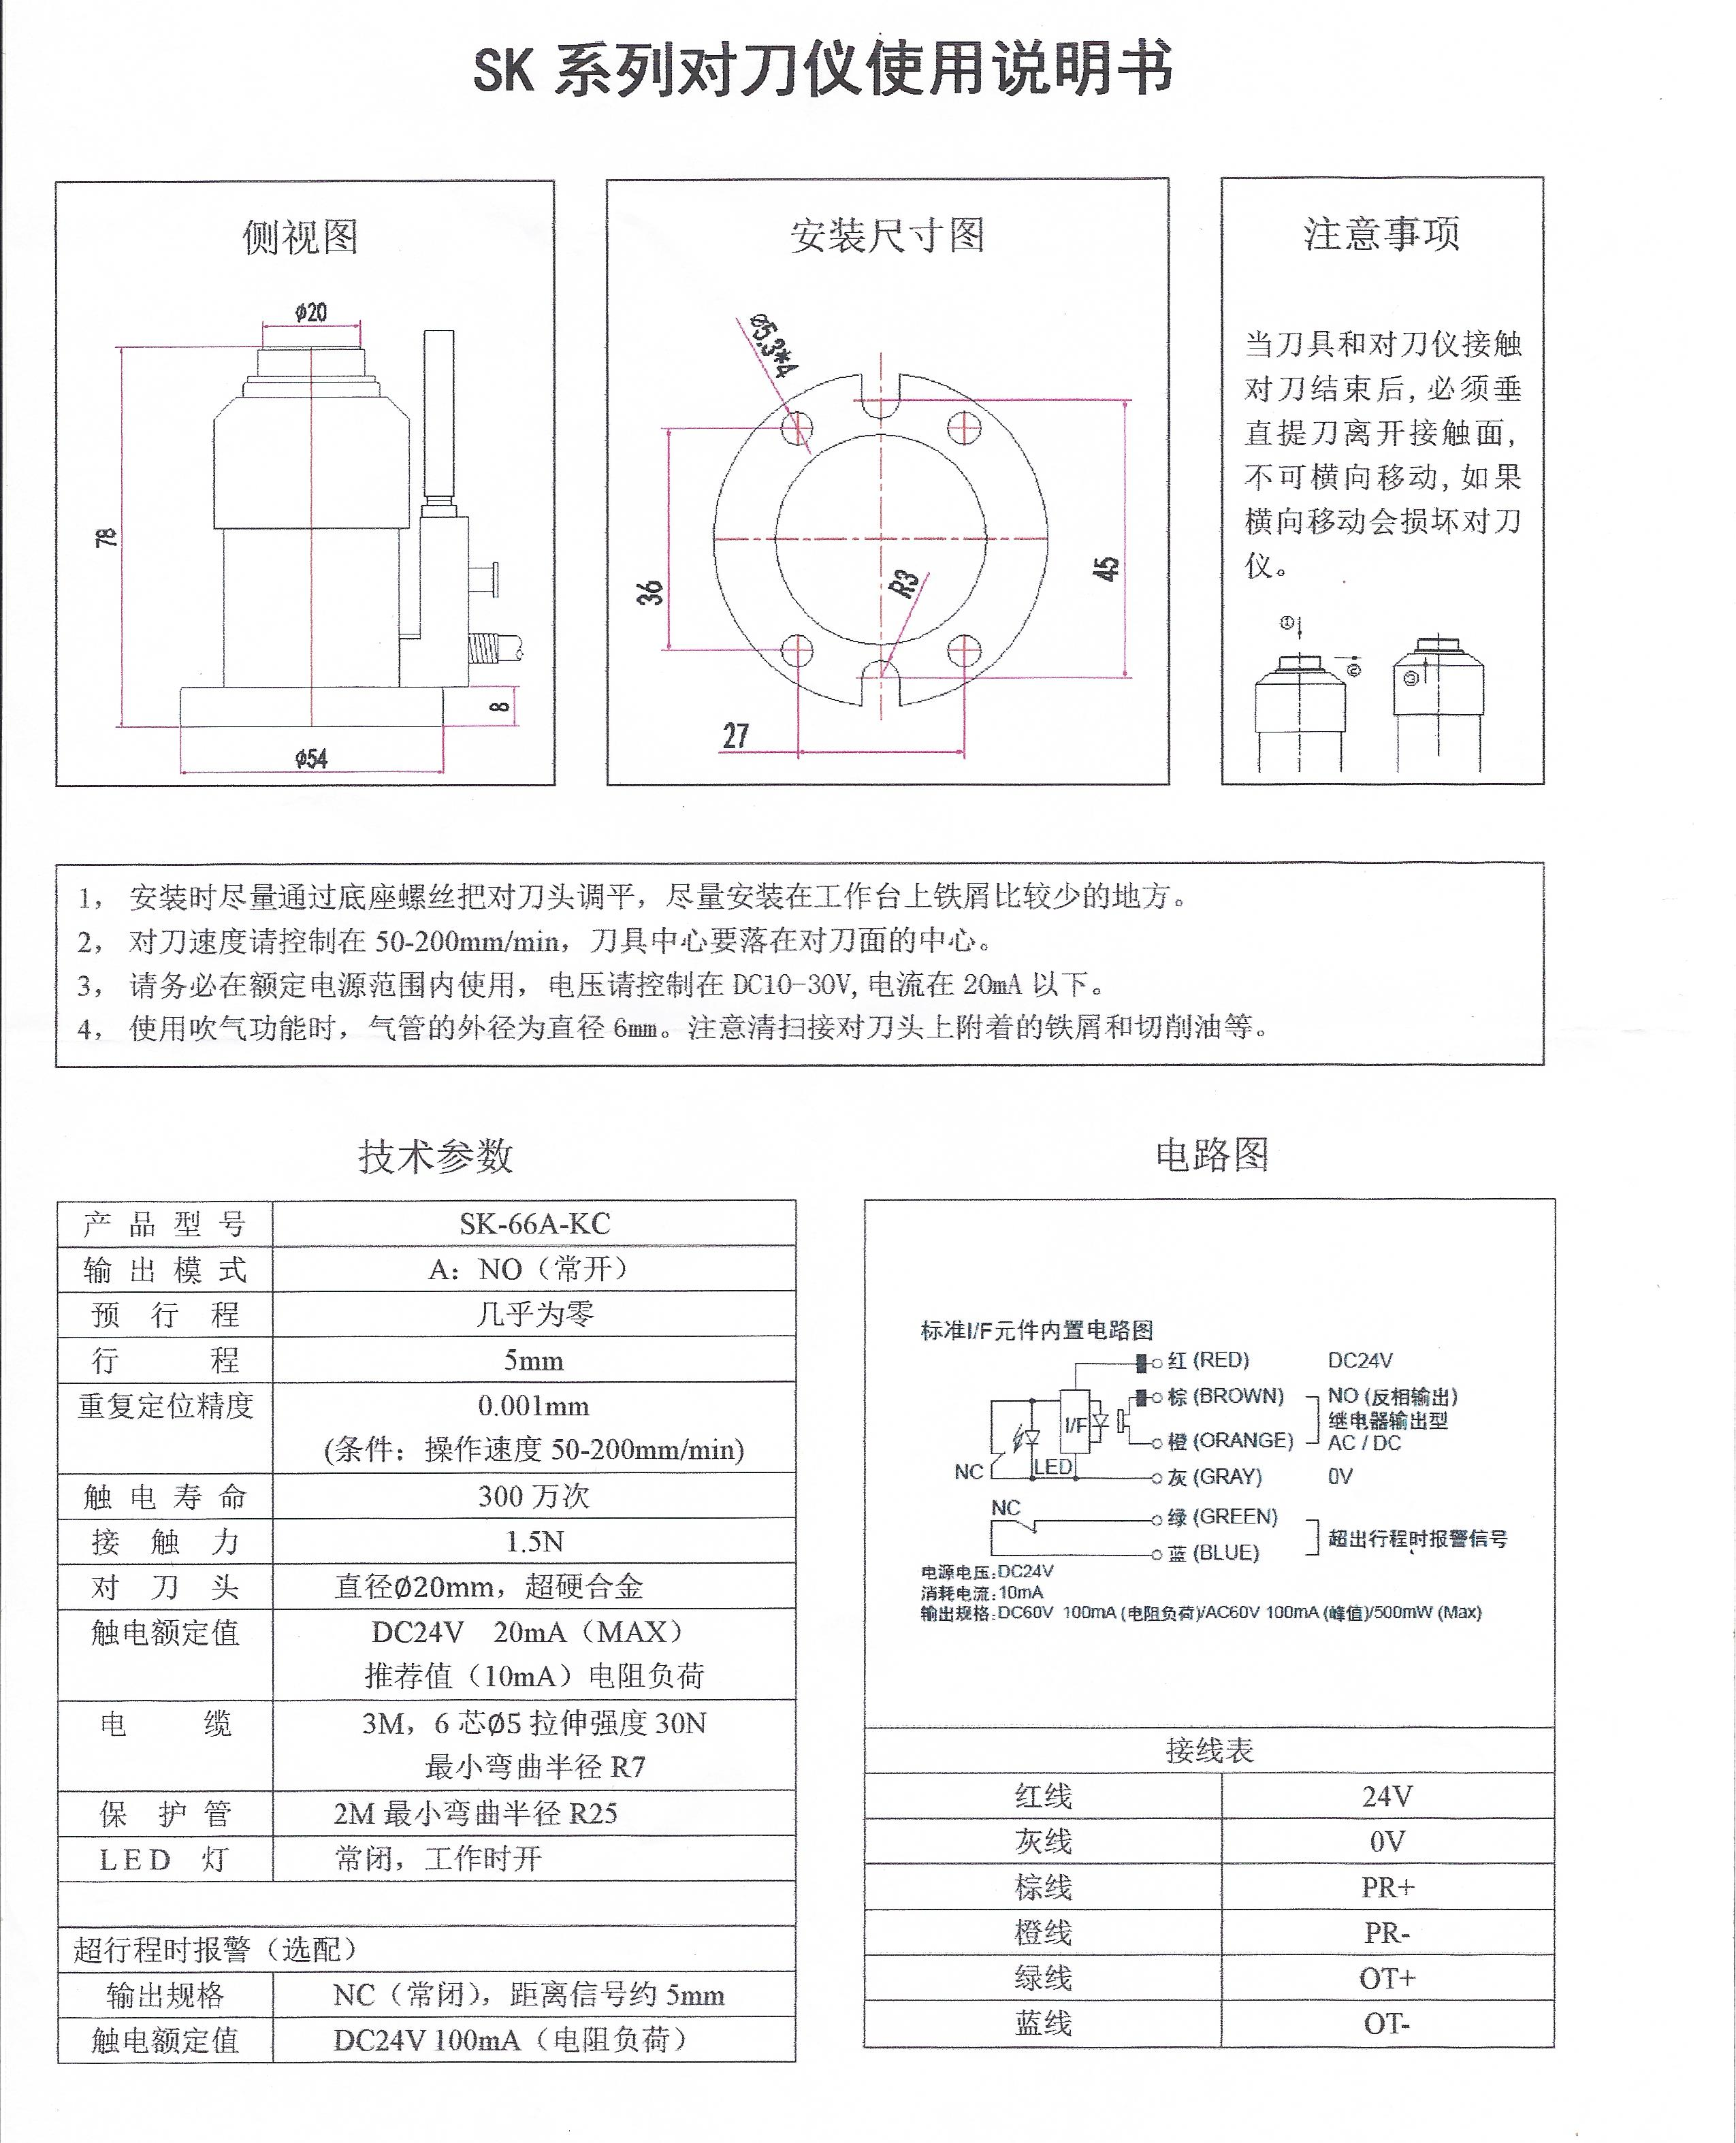 China Sanze ETS Tech and Wiring Info?resize\\\\\\\\\\\\\\\\\\\\\\\\\\\\\\\\\\\\\\\\\\\\\\\\\\\\\\\\\\\\\\\\\\\\\\\\\\\\\\\\\\\\\\\\\\\\\\\\\\\\\\\\\\\\\\\\\\\\\\\\\\\\\\\\\\\\\\\\\\\\\\\\\\\\\\\\\\\\\\\\\\\\\\\\\\\\\\\\\\\\\\\\\\\\\\\\\\\\\\\\\\\\\\\\\\\\\\\\\\\\\\\\\\\\\\\\\\\\\\\\\\\\\\\\\\\\\\\=665%2C821 tbb 3g wiring diagrams 4 way wiring diagram \u2022 edmiracle co Basic Electrical Wiring Diagrams at cita.asia